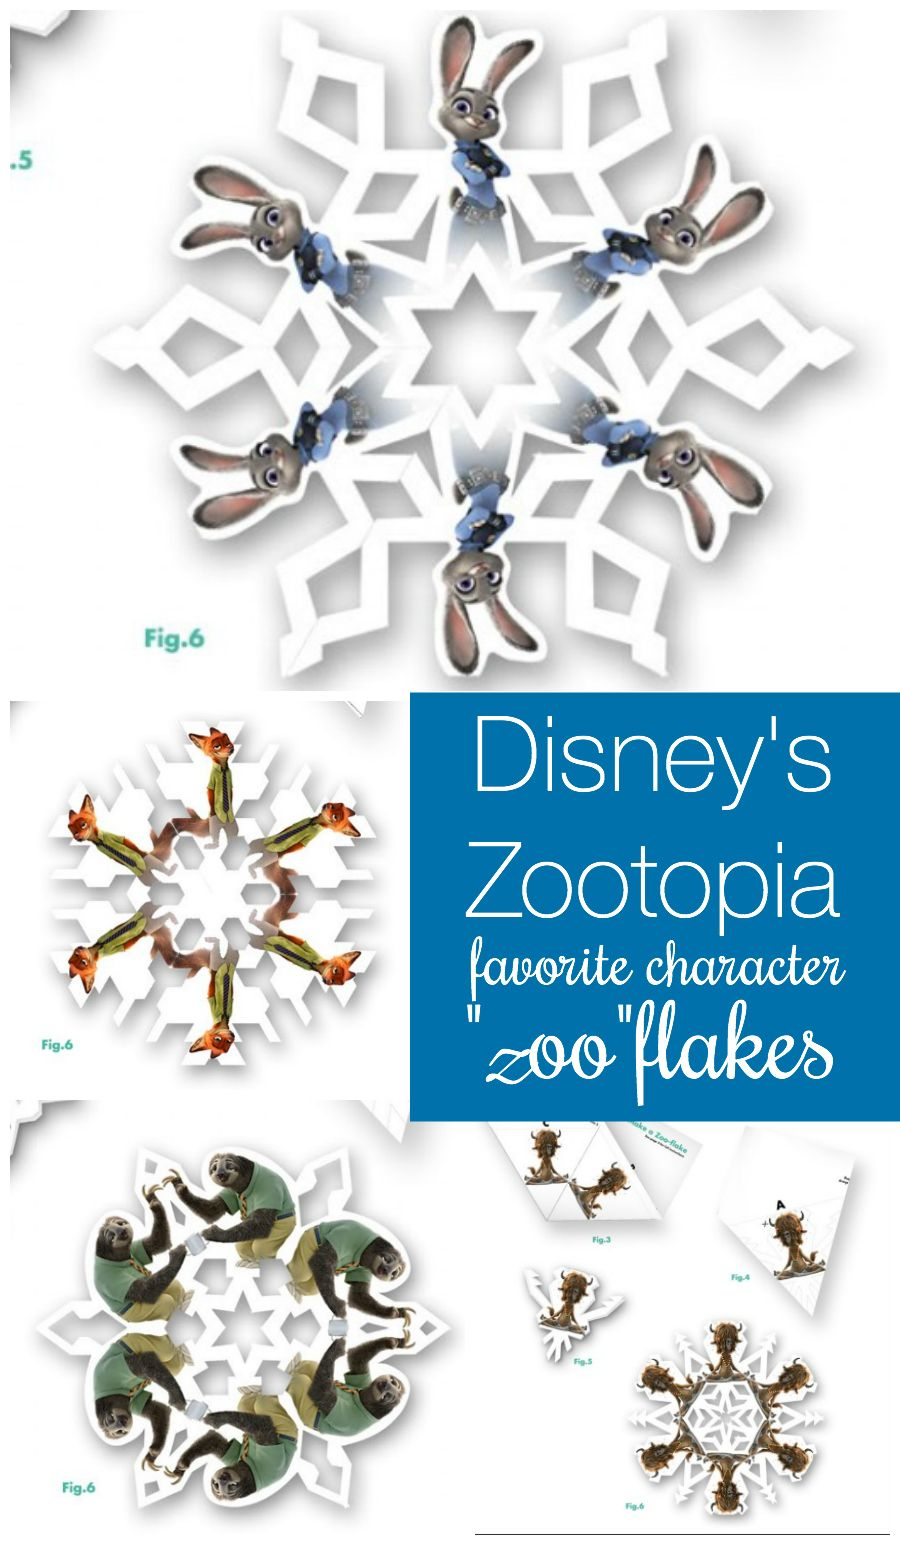 Disneys Zootopia Zooflakes Coloring Pages With All Your Favorite Characters